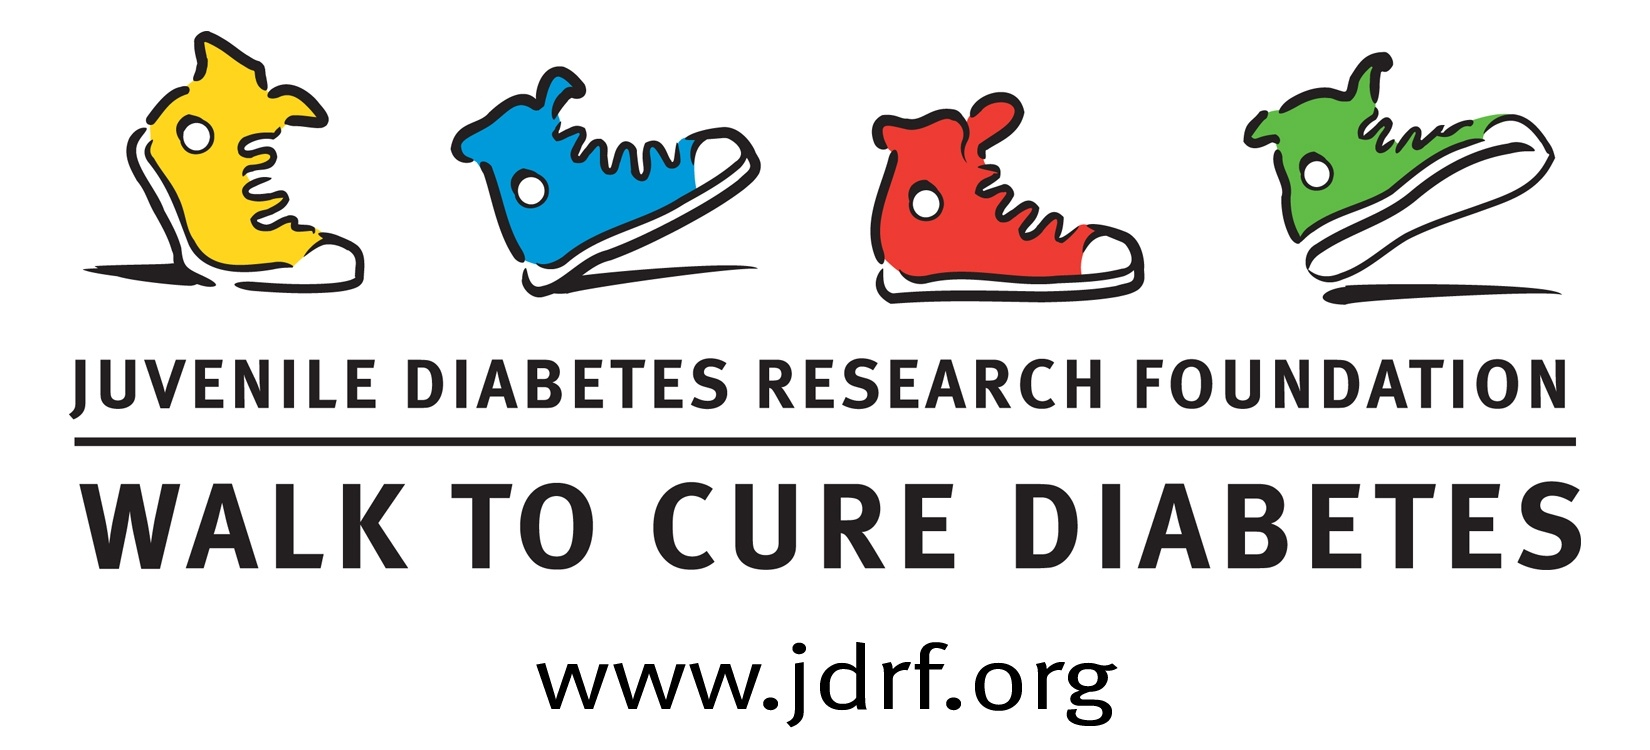 Aviture Joins in Supporting the JDRF Walk for T1D